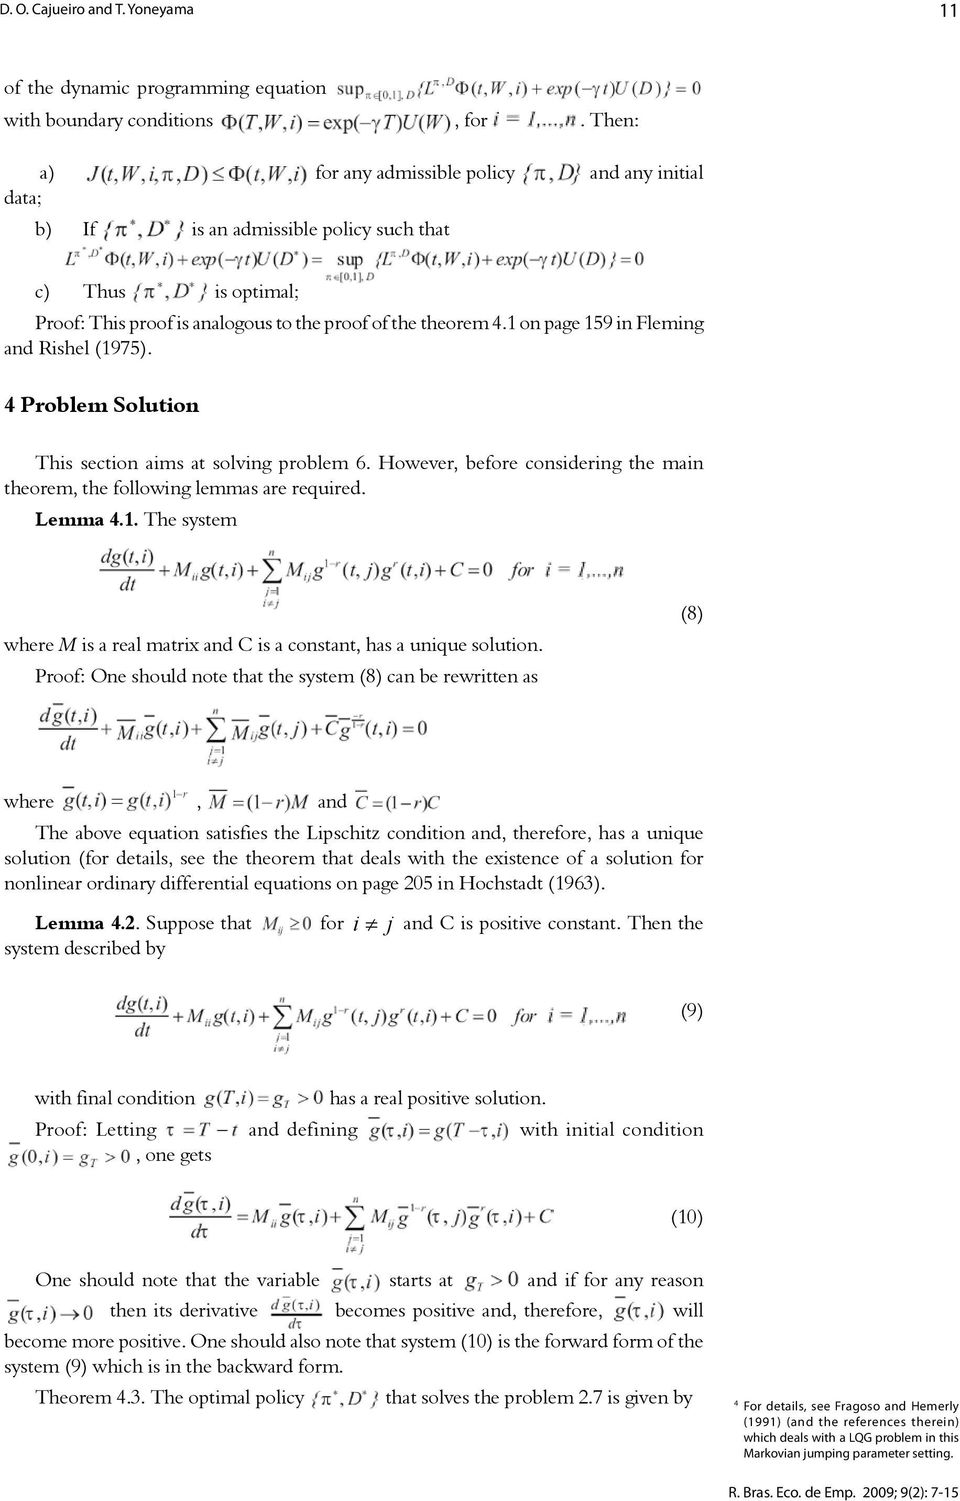 1 on page 159 in Fleming and Rishel (1975). 4 Problem Solution This section aims at solving problem 6. However, before considering the main theorem, the following lemmas are required. Lemma 4.1. The system where M is a real matrix and C is a constant, has a unique solution.